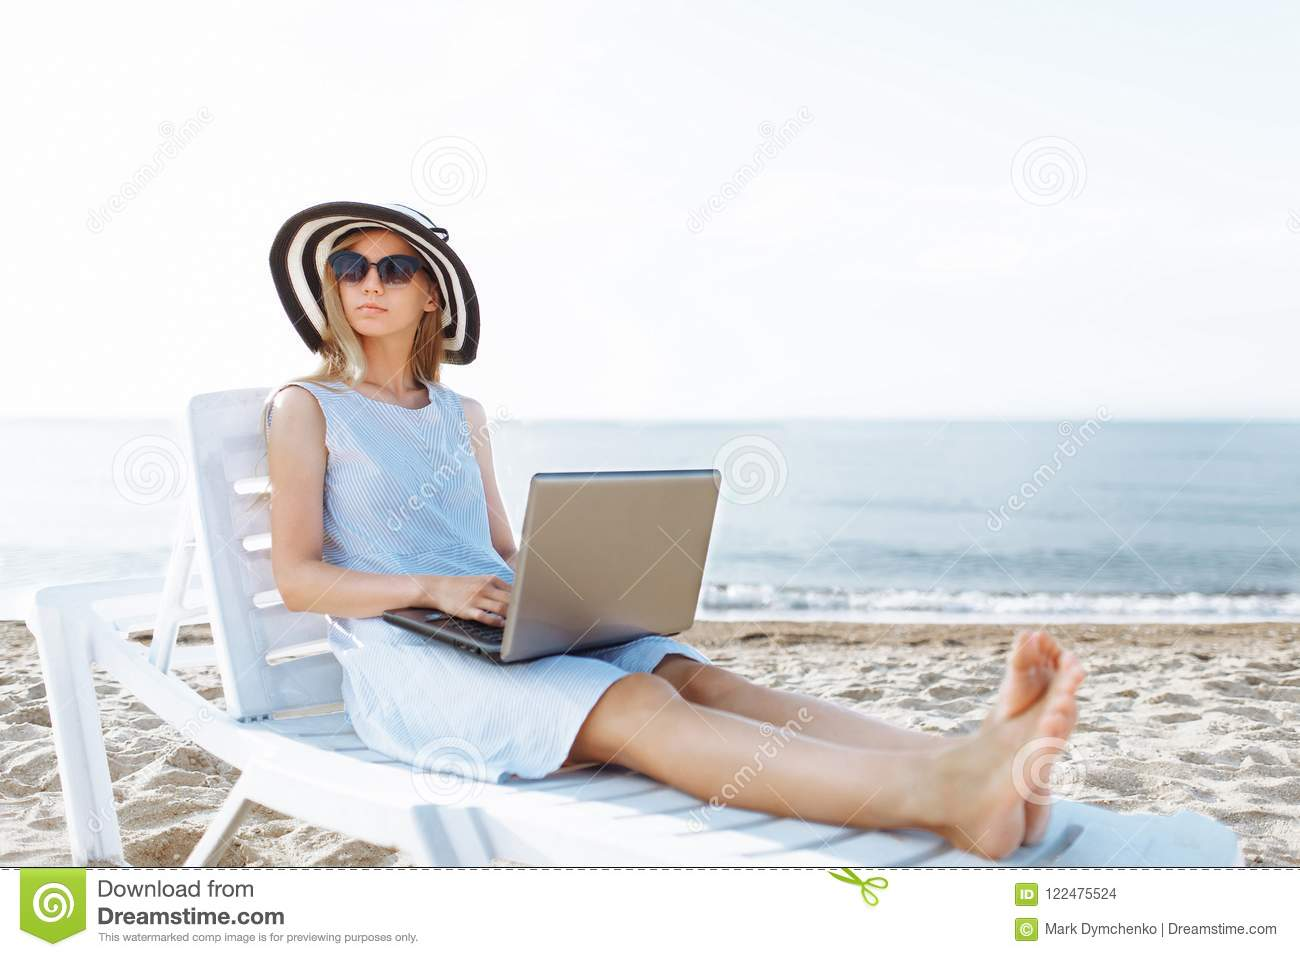 Beautiful girl sitting with a laptop on a chaise longue, a woman working on vacation, job search